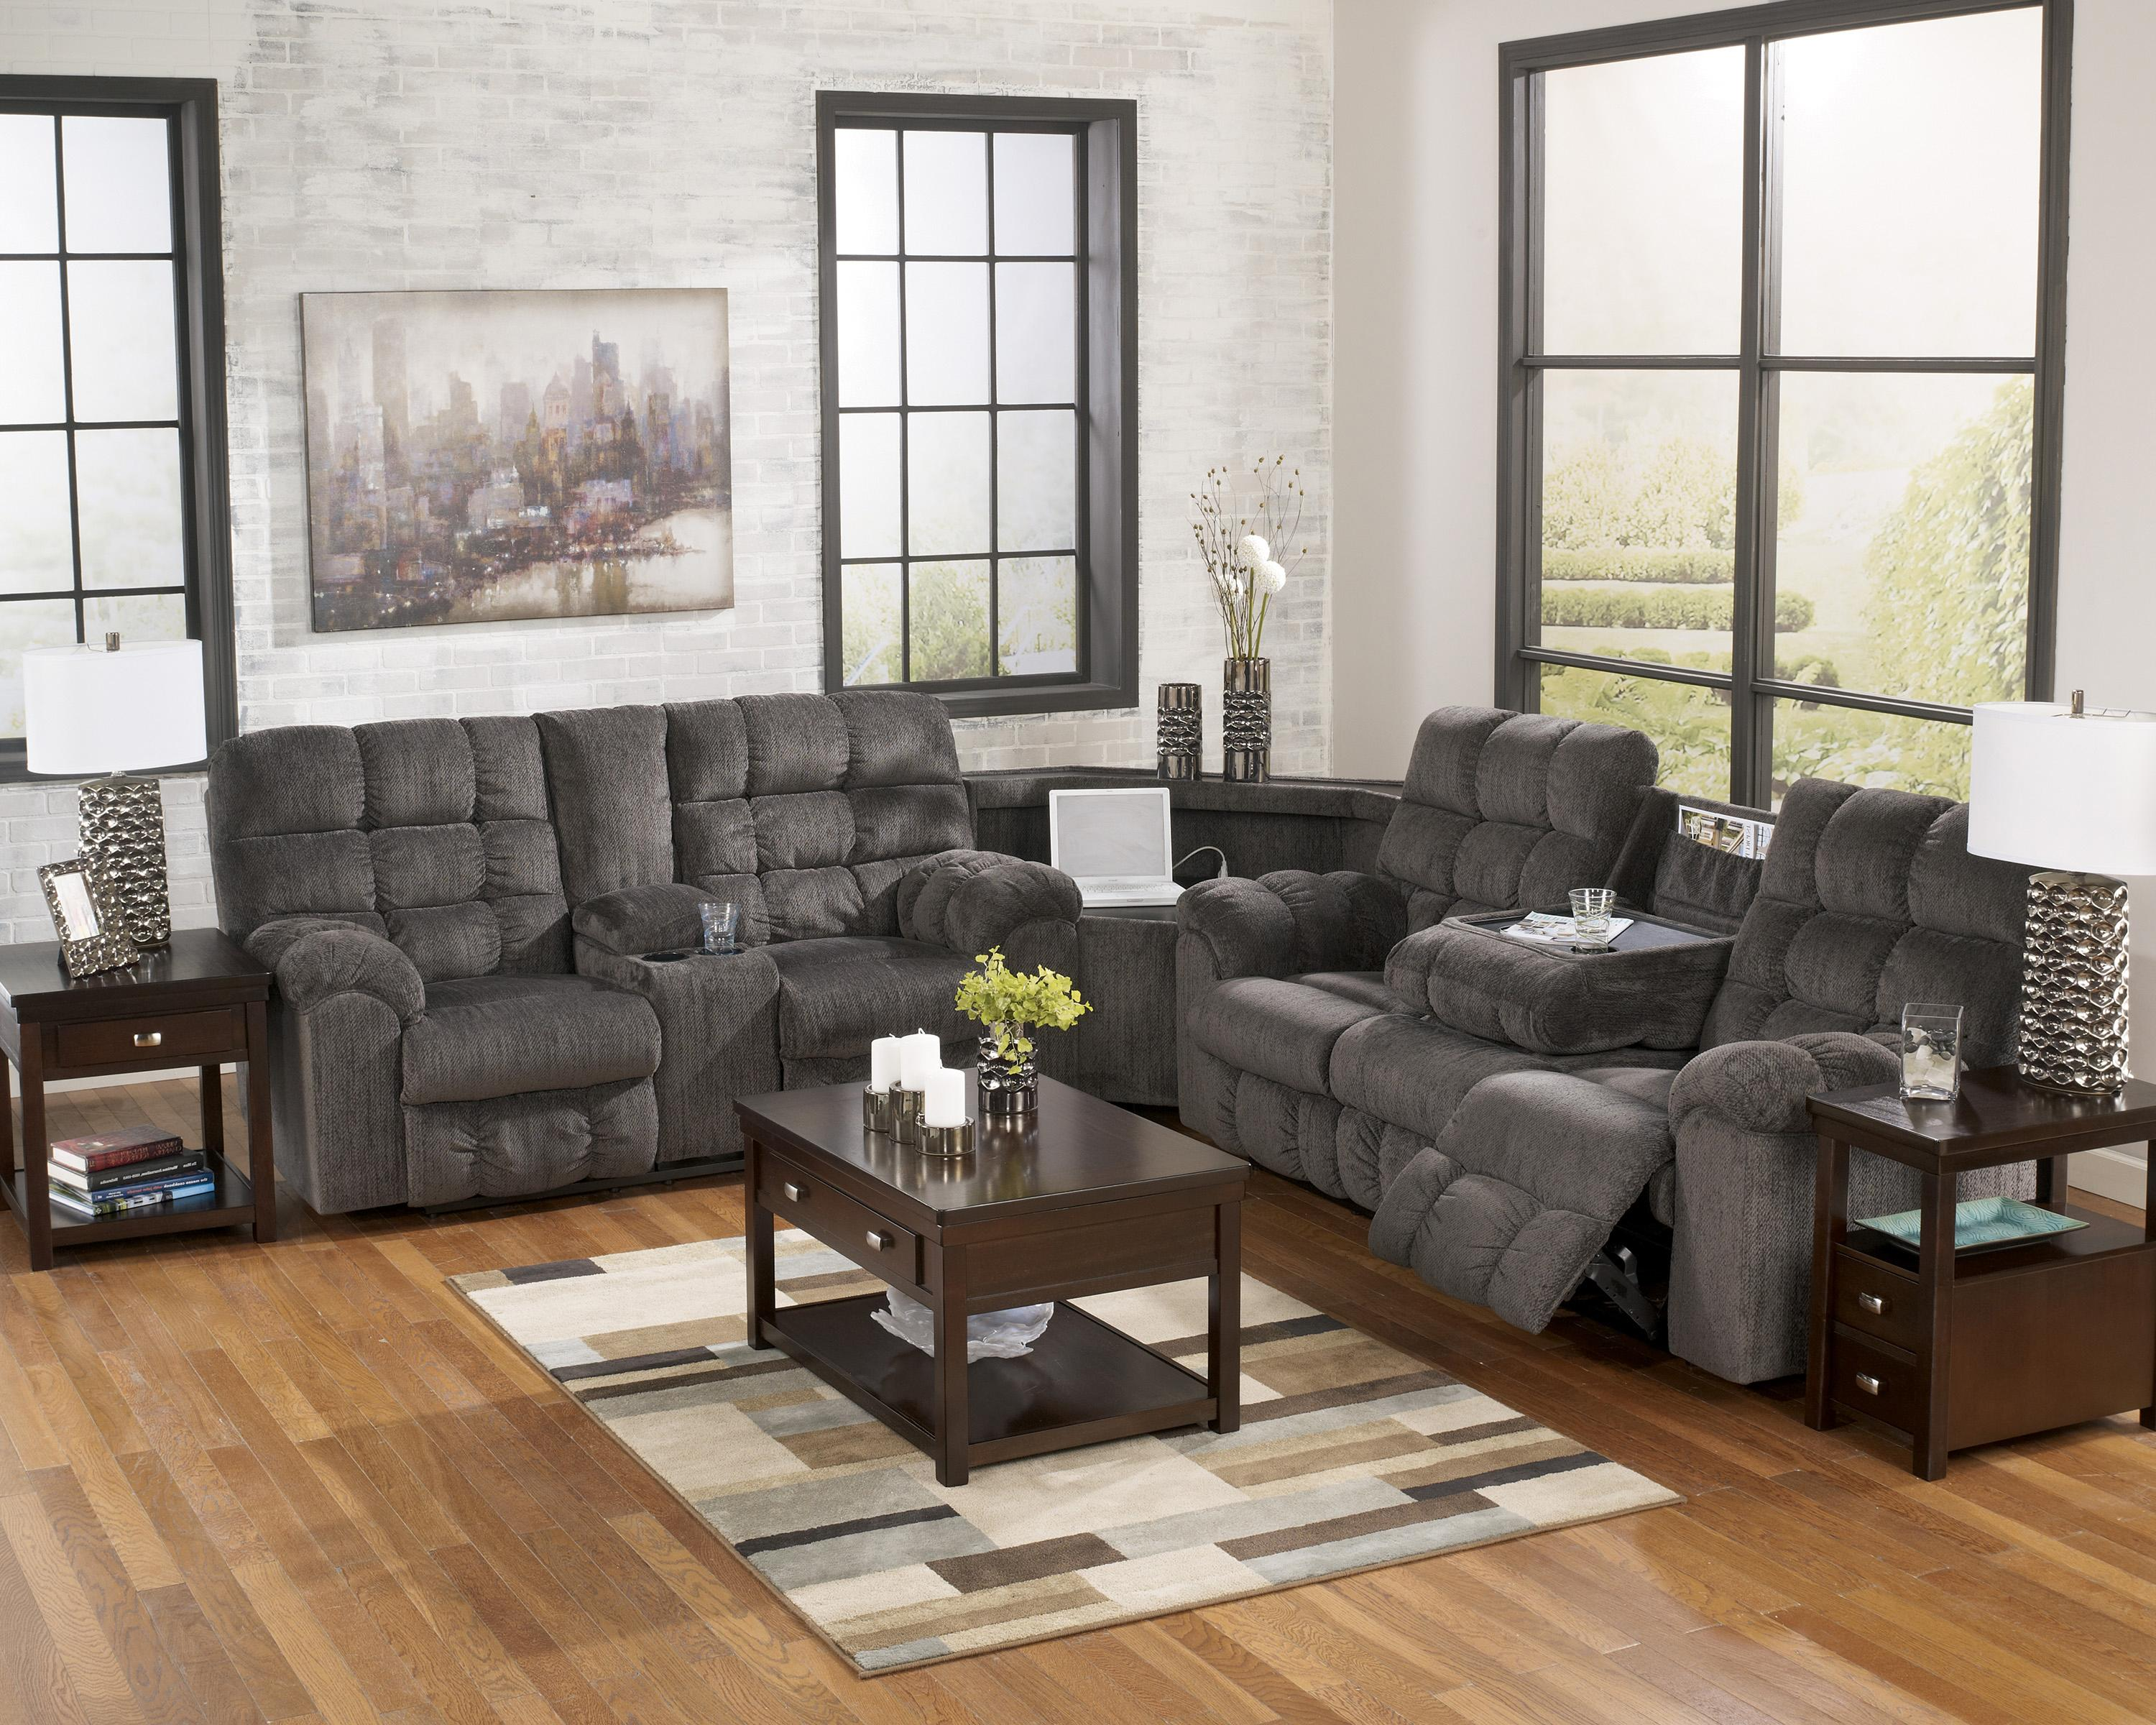 Signature Design by Ashley Acieona - Slate Reclining Sectional with Left Side Loveseat - Item Number: 5830094+77+89